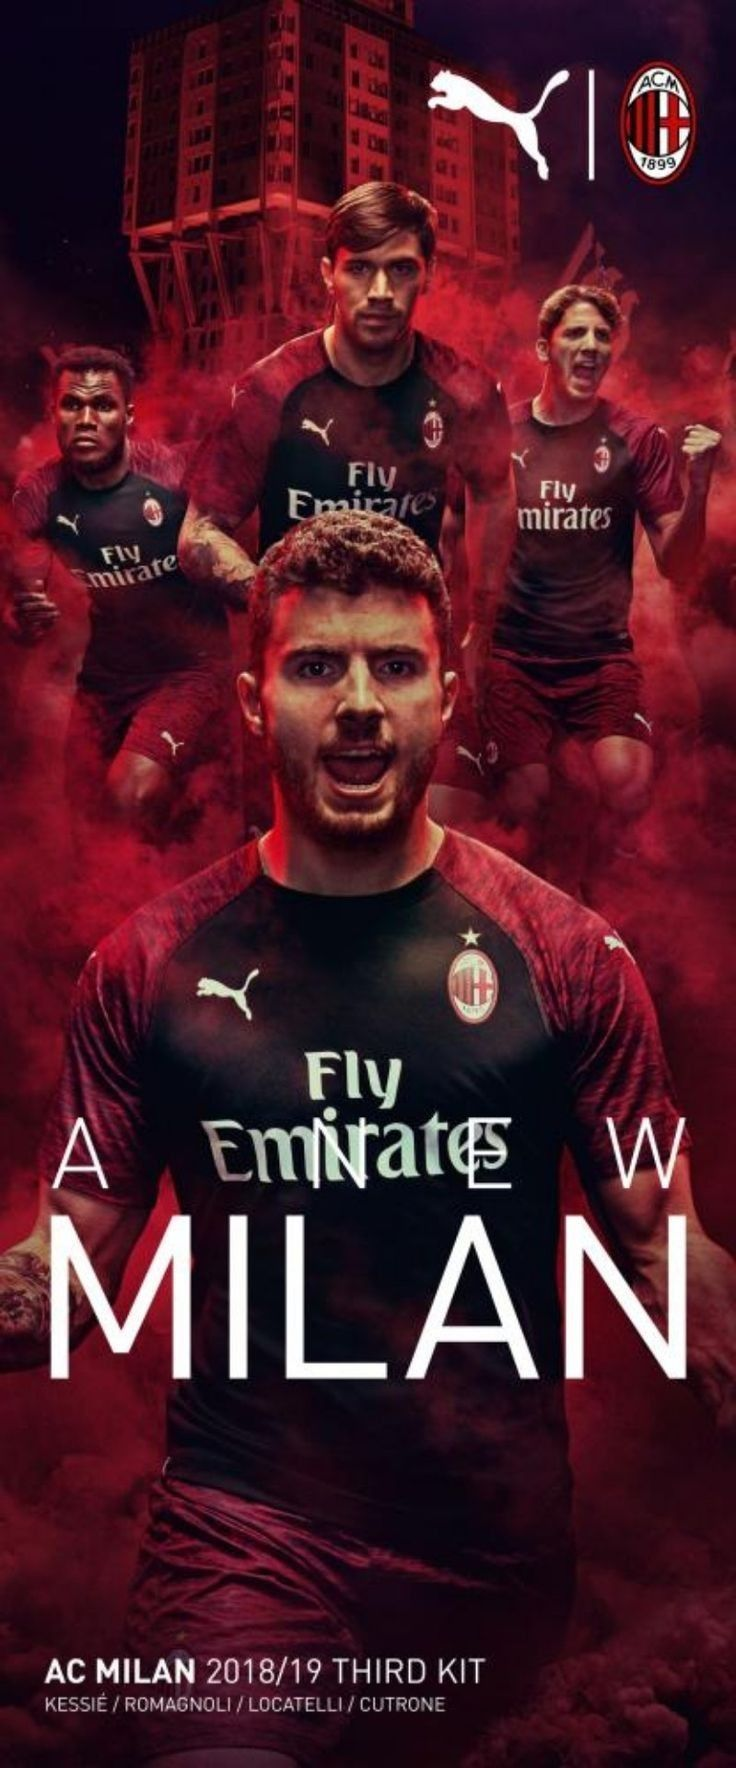 Pin by Floky 81 on Forza Milan Milan wallpaper Milan Ac milan 736x1768